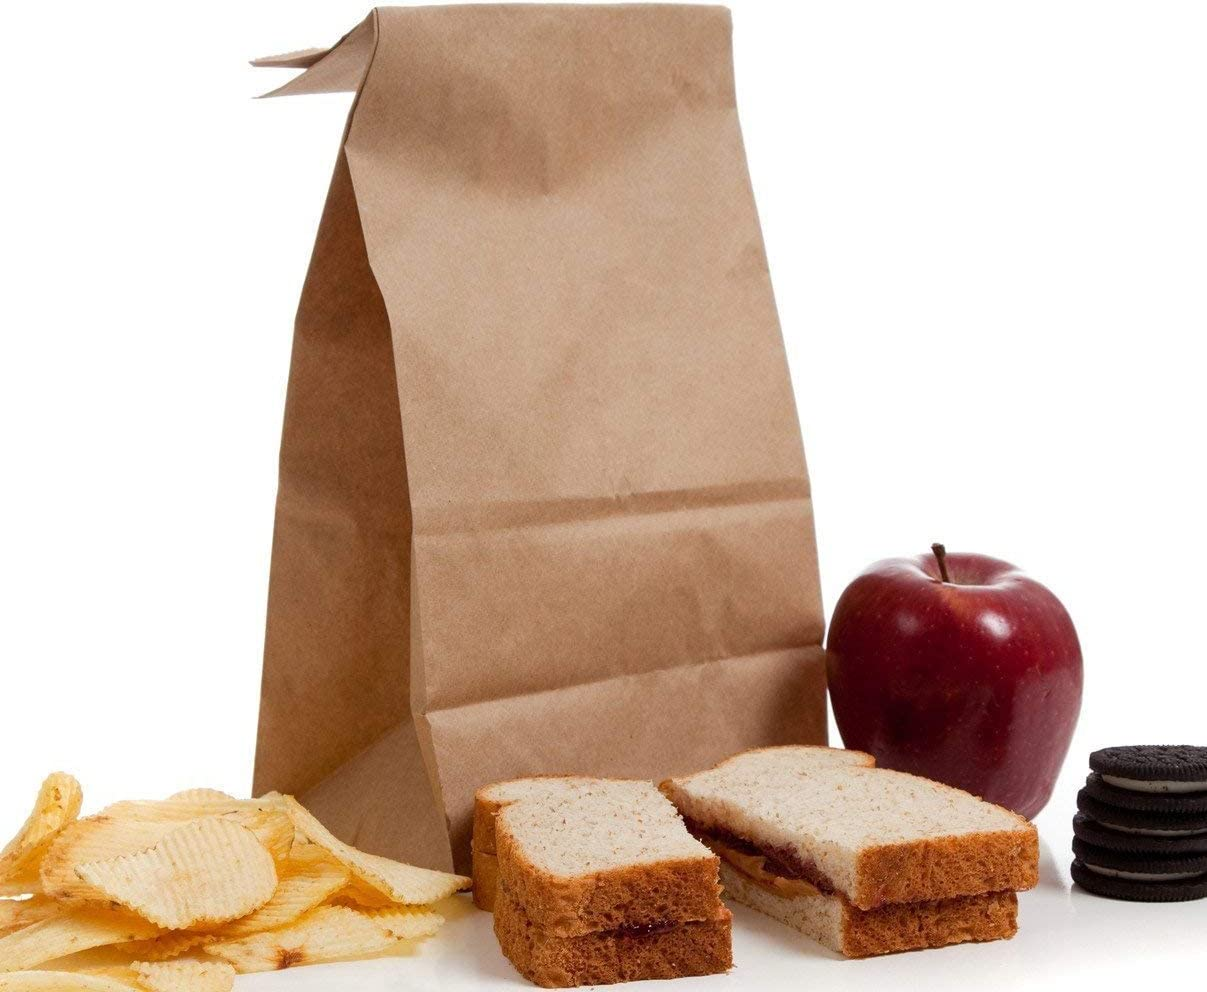 BagDream Brown Paper Lunch Bags Bread Bags 12lb 7x4.5x13.75 Inches 100Pcs Kraft Paper Bags Bulk, Paper Snack Bags, 100% Recycled Kraft Lunch Bags